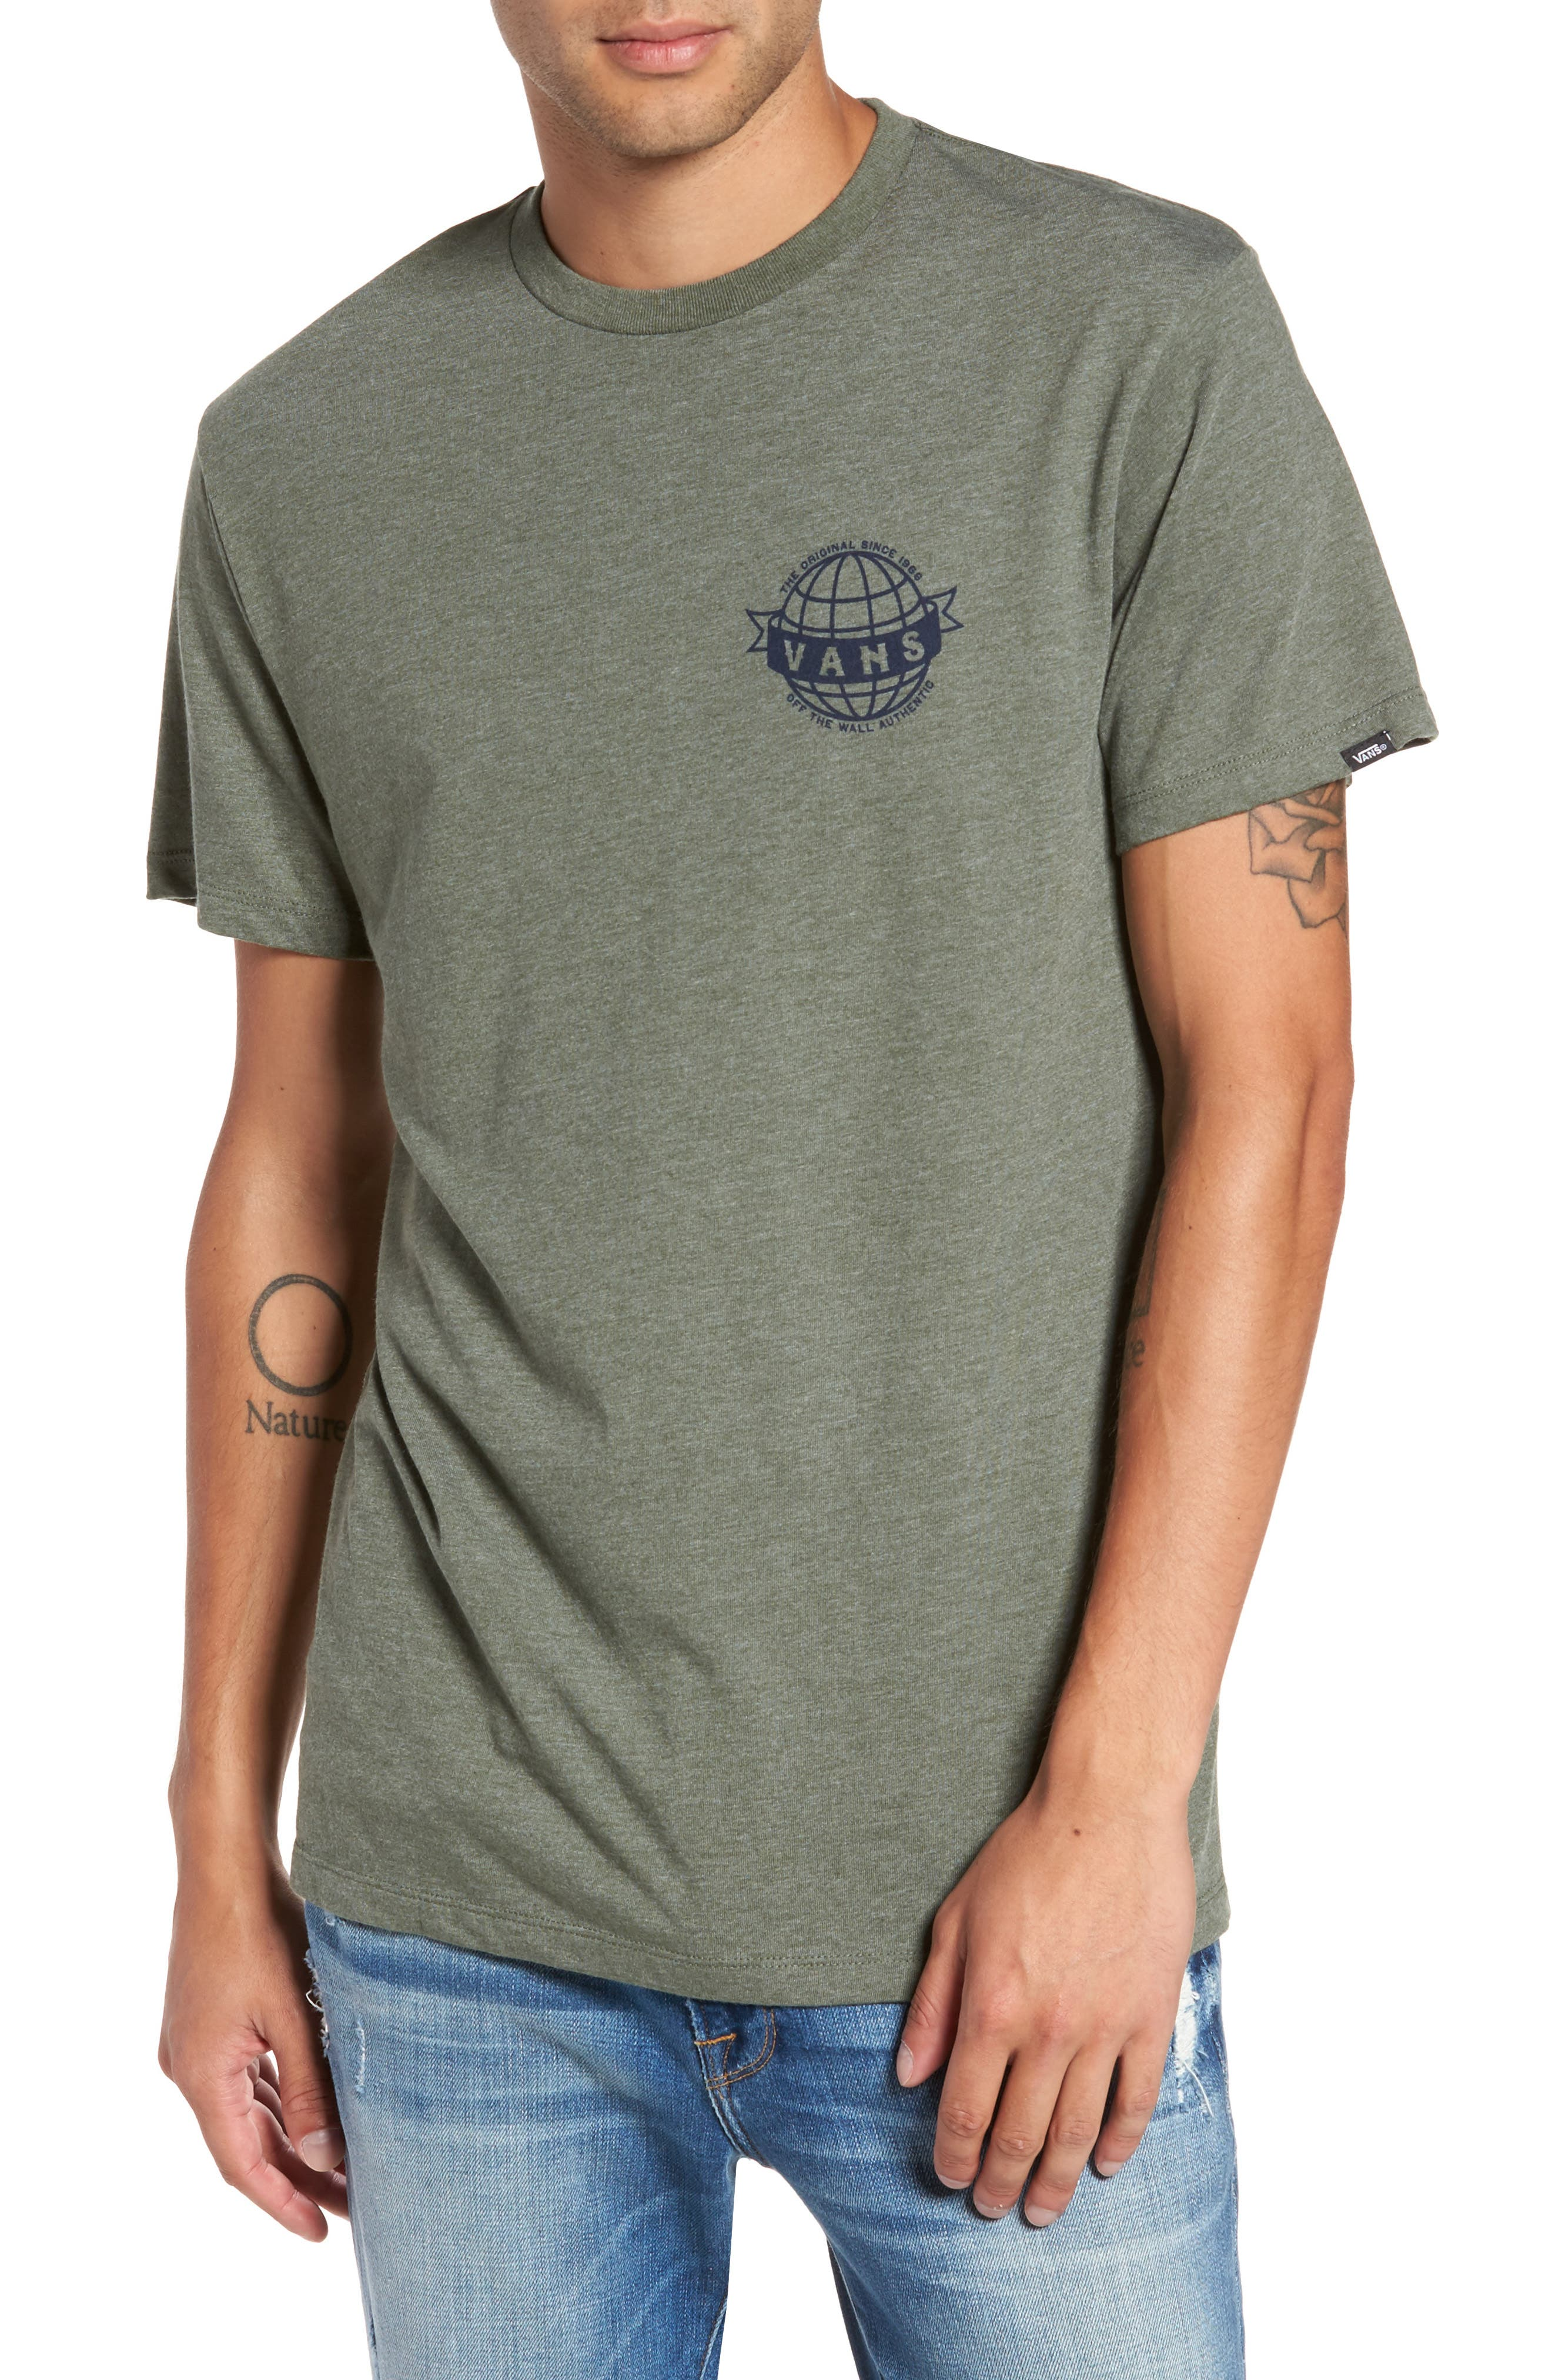 Global Landing Logo Graphic T-Shirt,                             Main thumbnail 1, color,                             Olive Heather